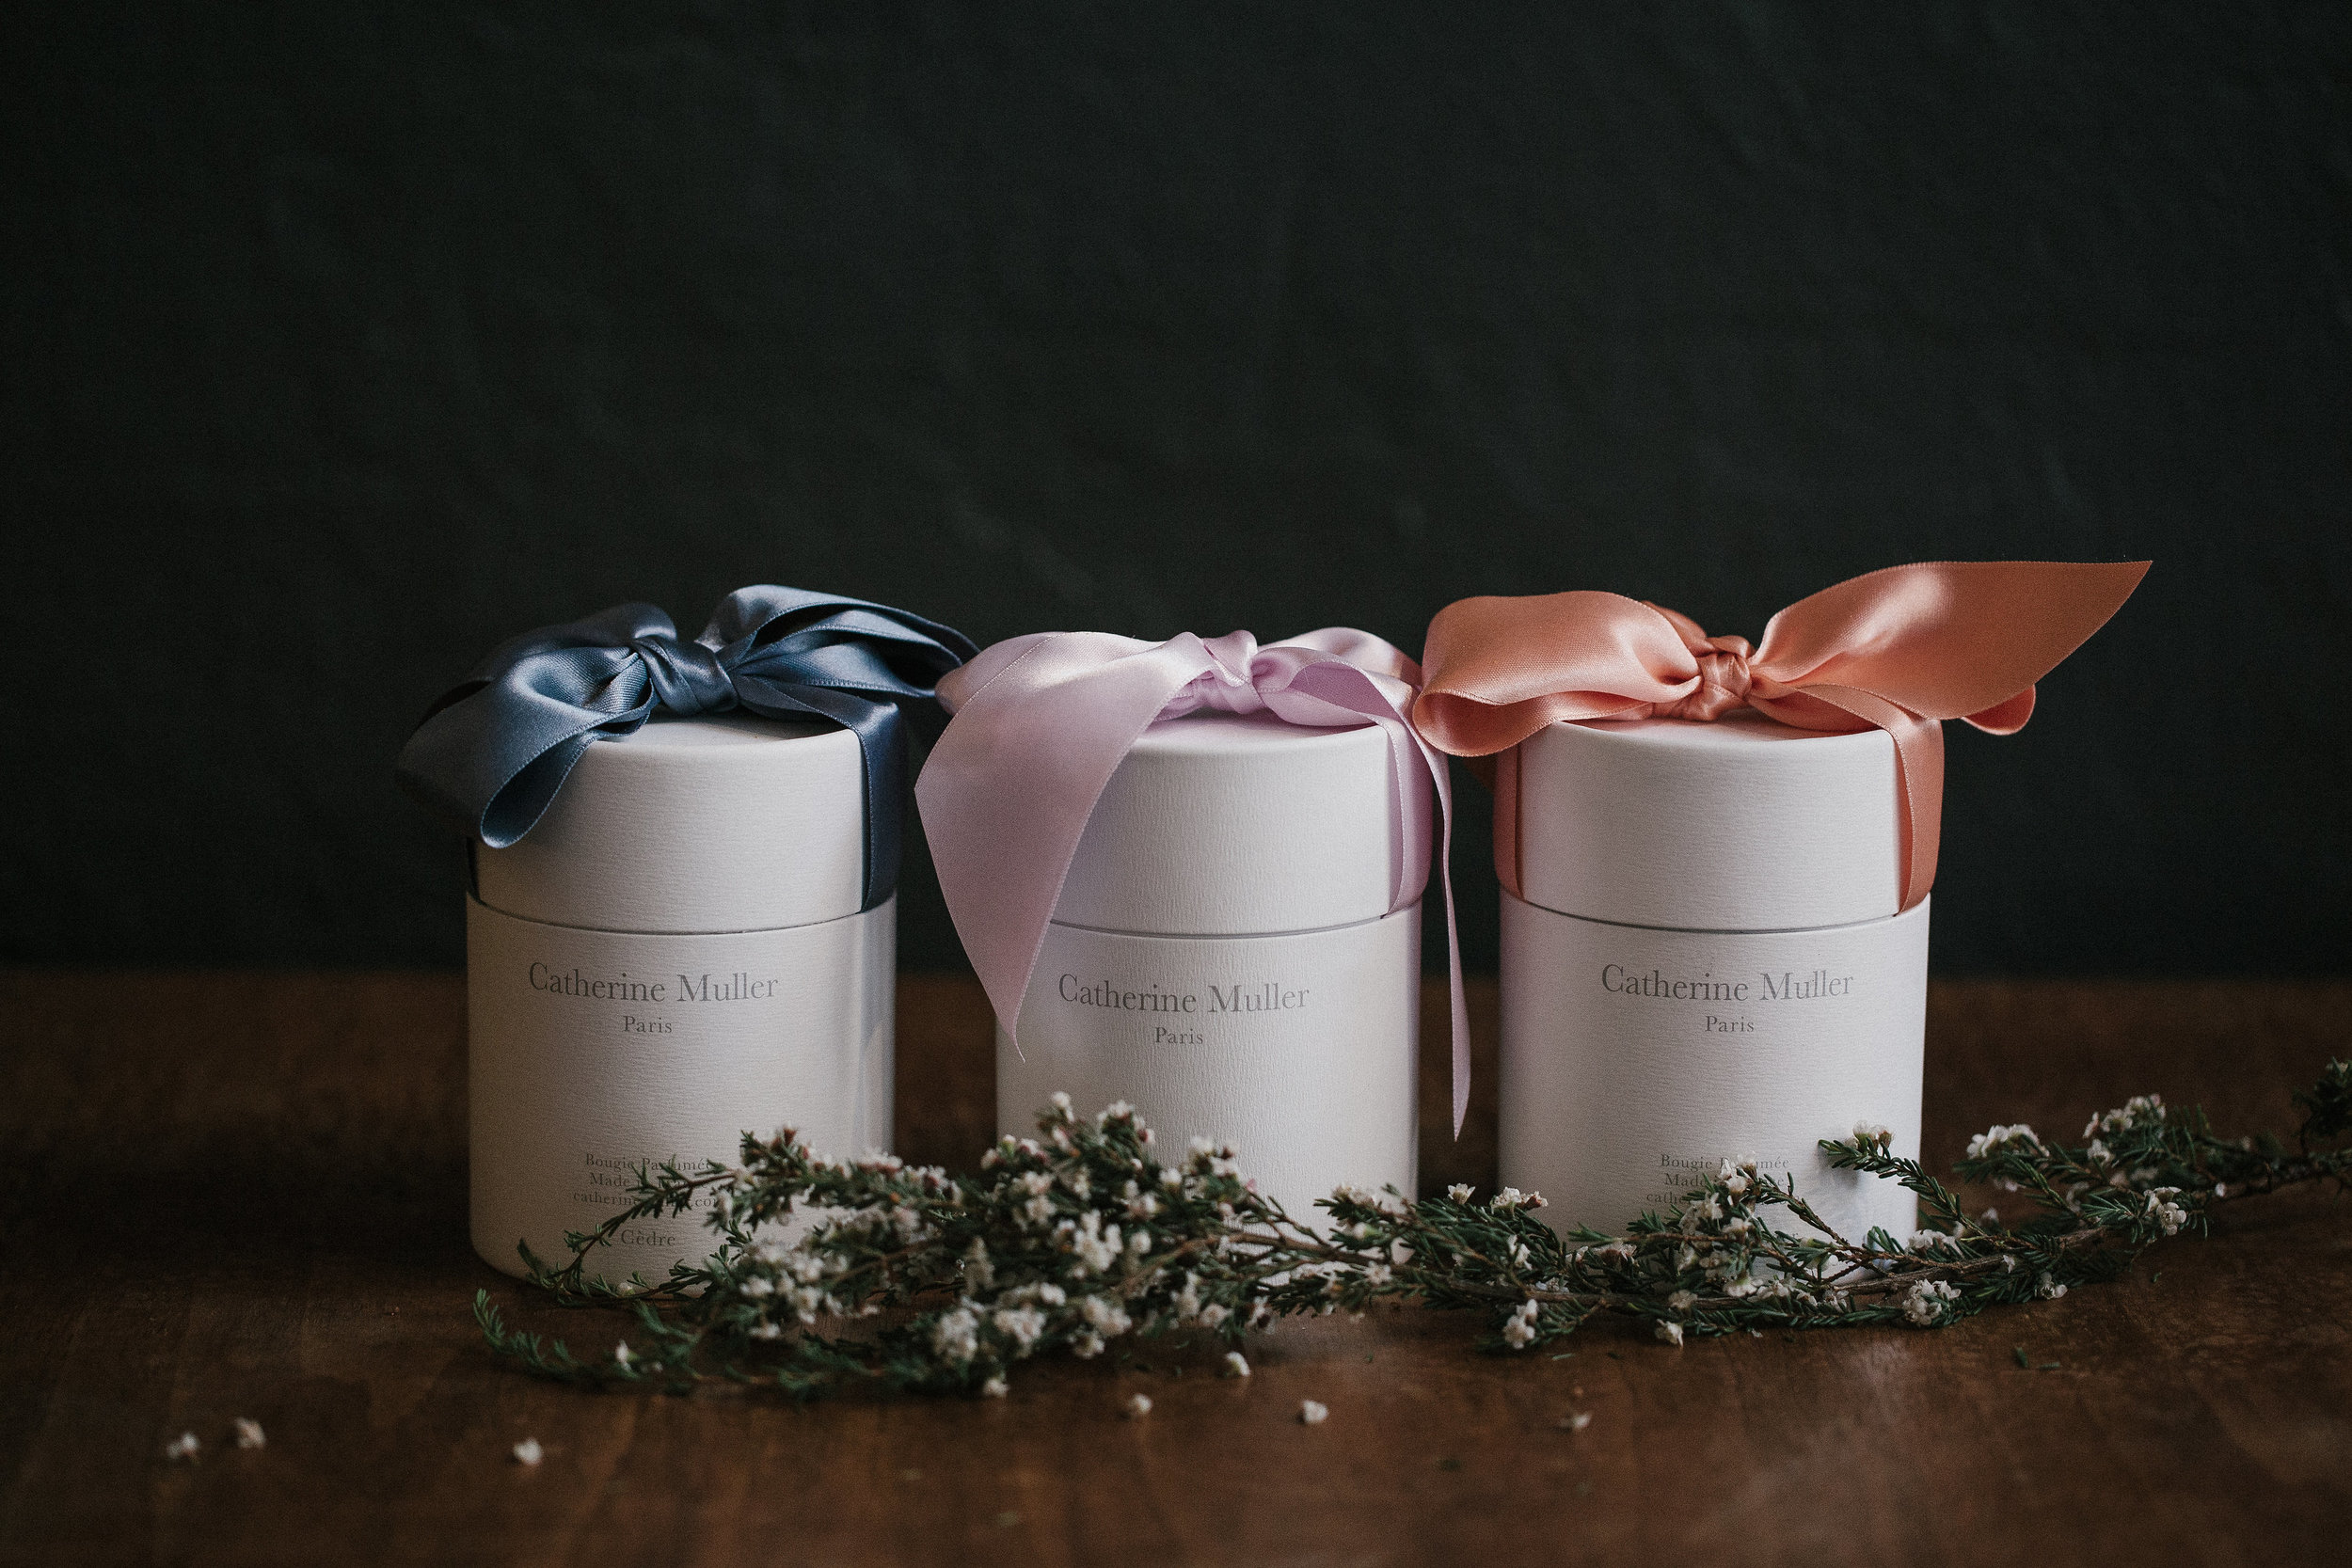 Catherine Muller scented candles